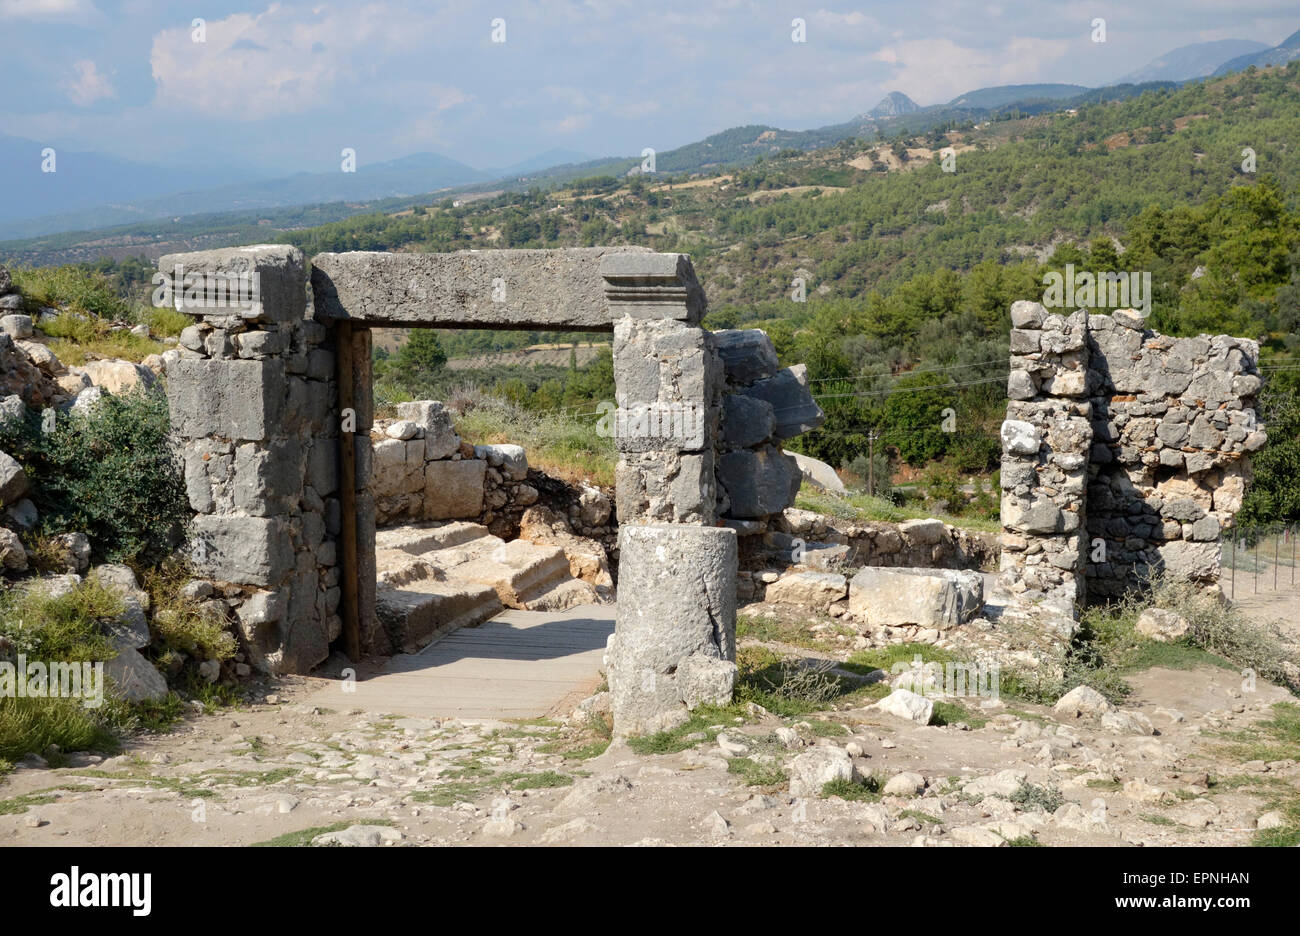 Entrance through the fortified wall at the north side of the ancient city of Tlos, Turkey - Stock Image